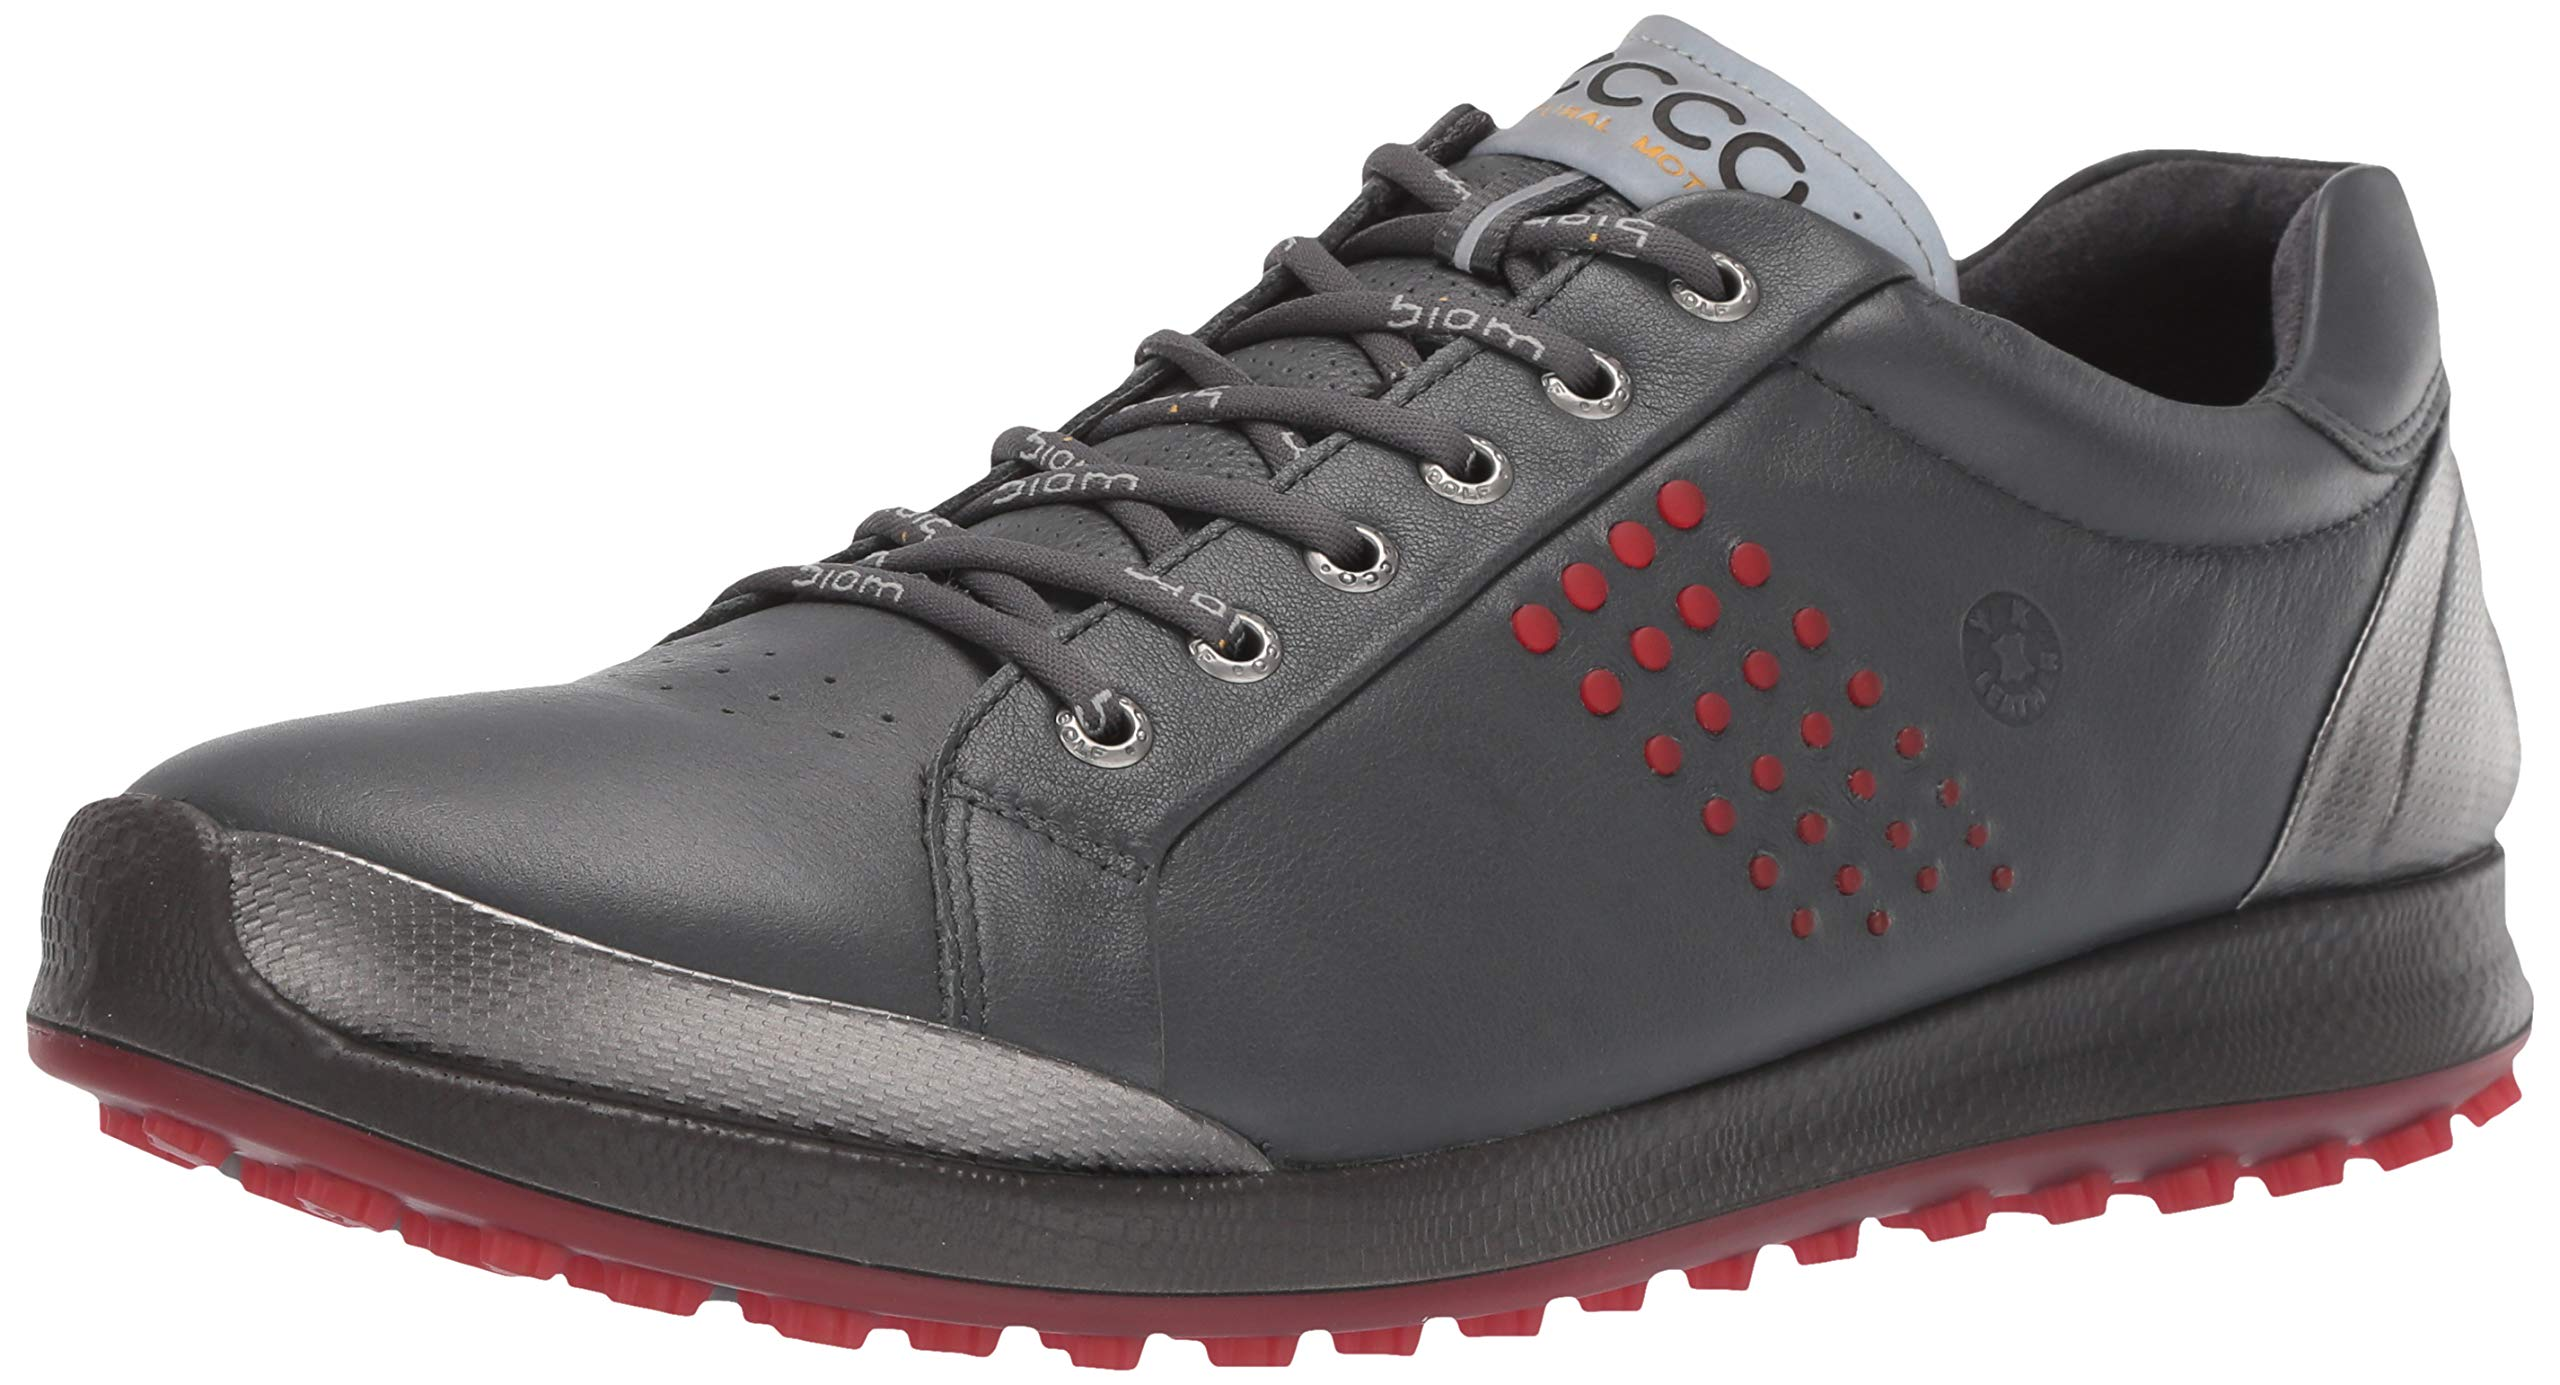 ECCO Men's Biom Hybrid 2 Hydromax Golf Shoe, Dark Shadow Yak Leather, 7 M US by ECCO